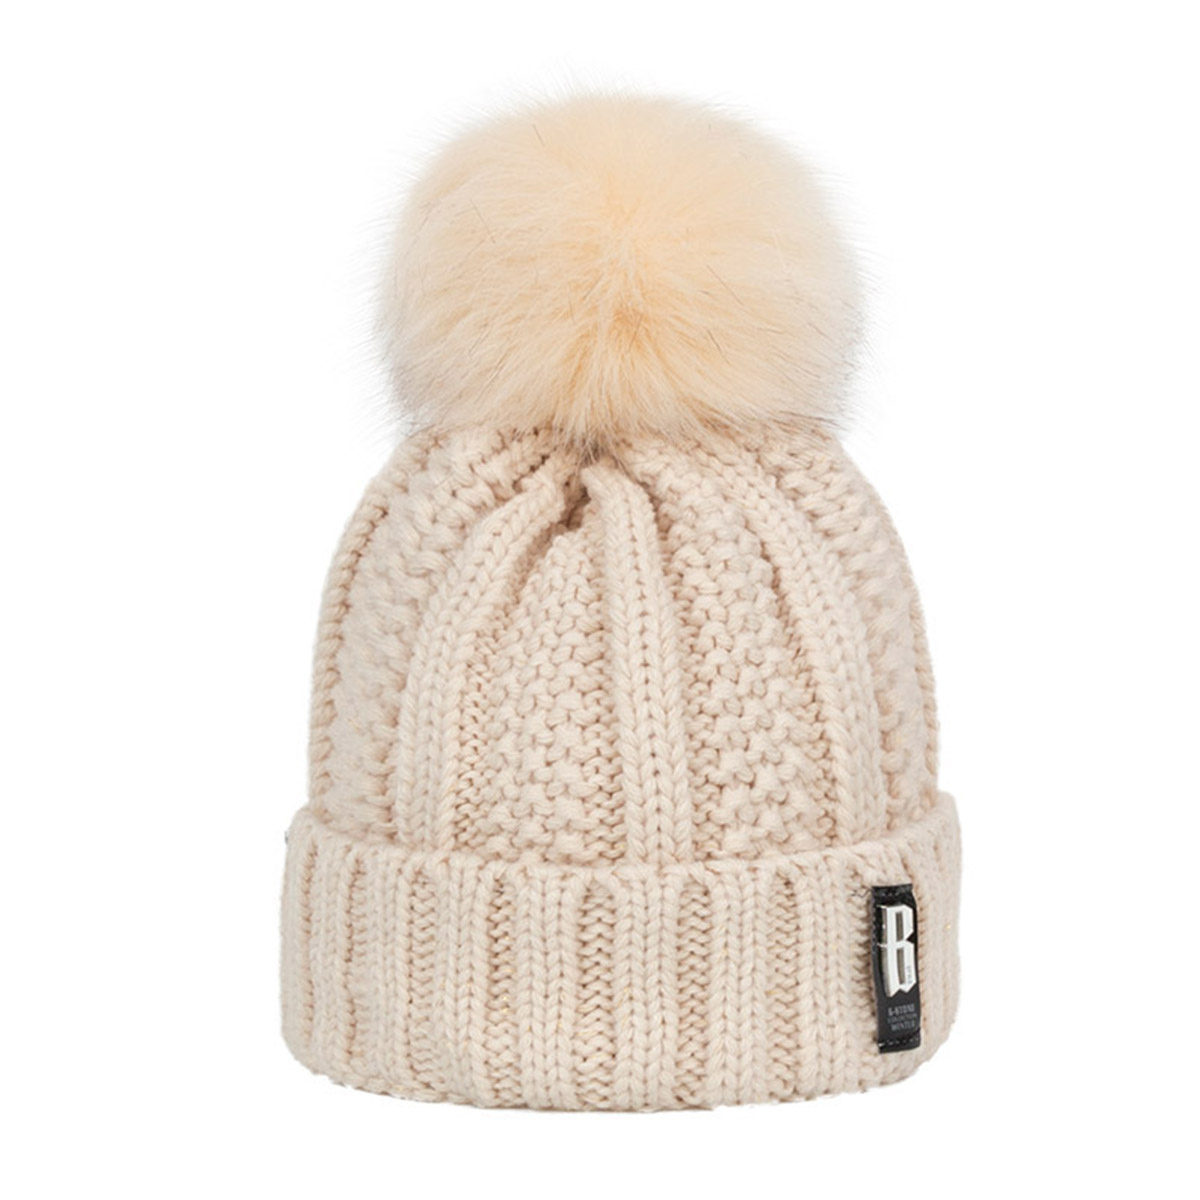 814bdd1a36e ... MLTBB 2018 Fashion Women s Winter Hat Brand Knit Warm Hat Skullies Beanies  Female Models Pom- ...